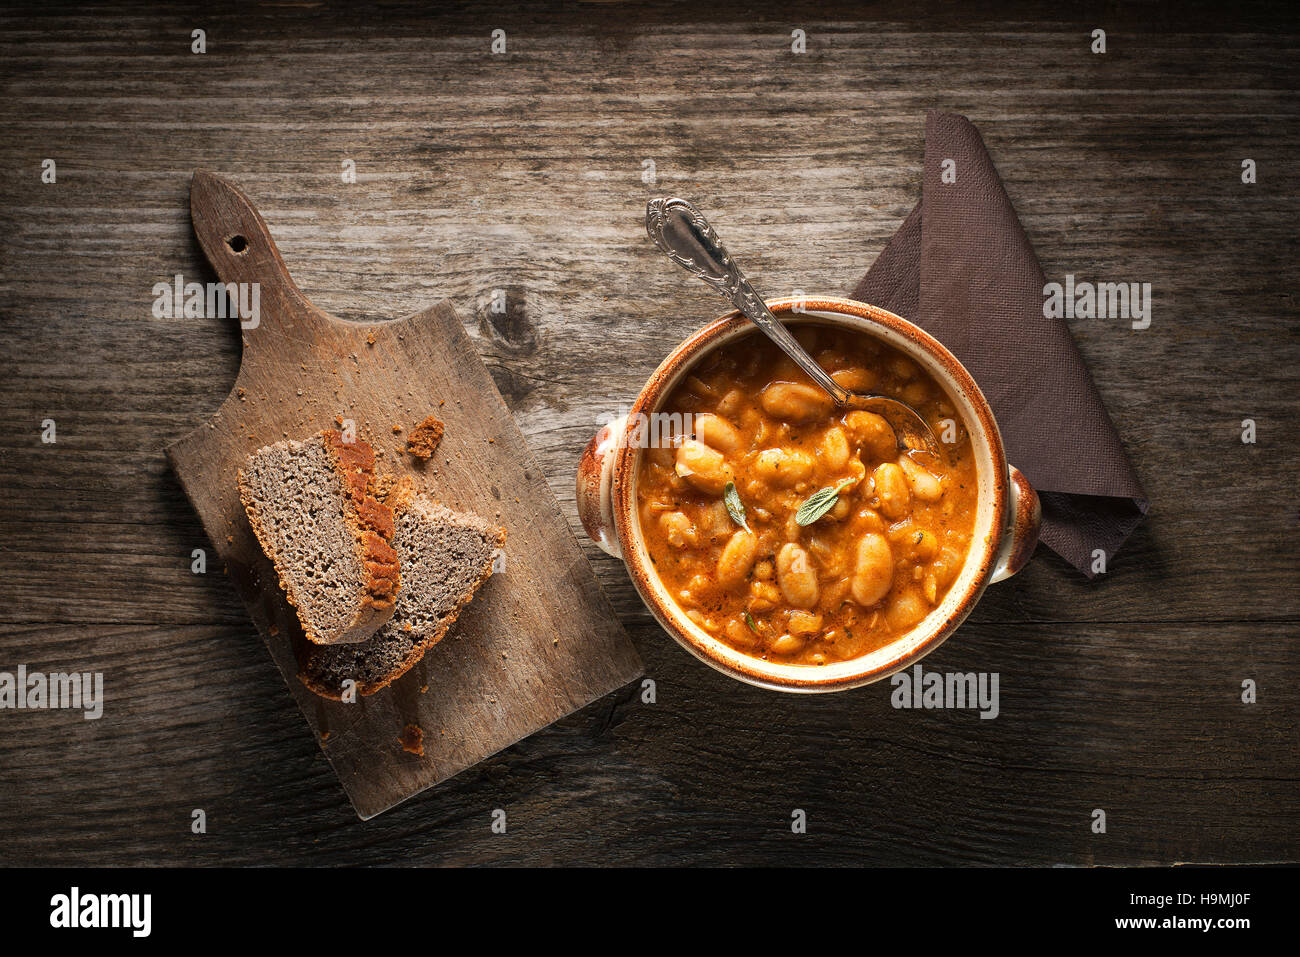 White bean stew with bread close up - Stock Image